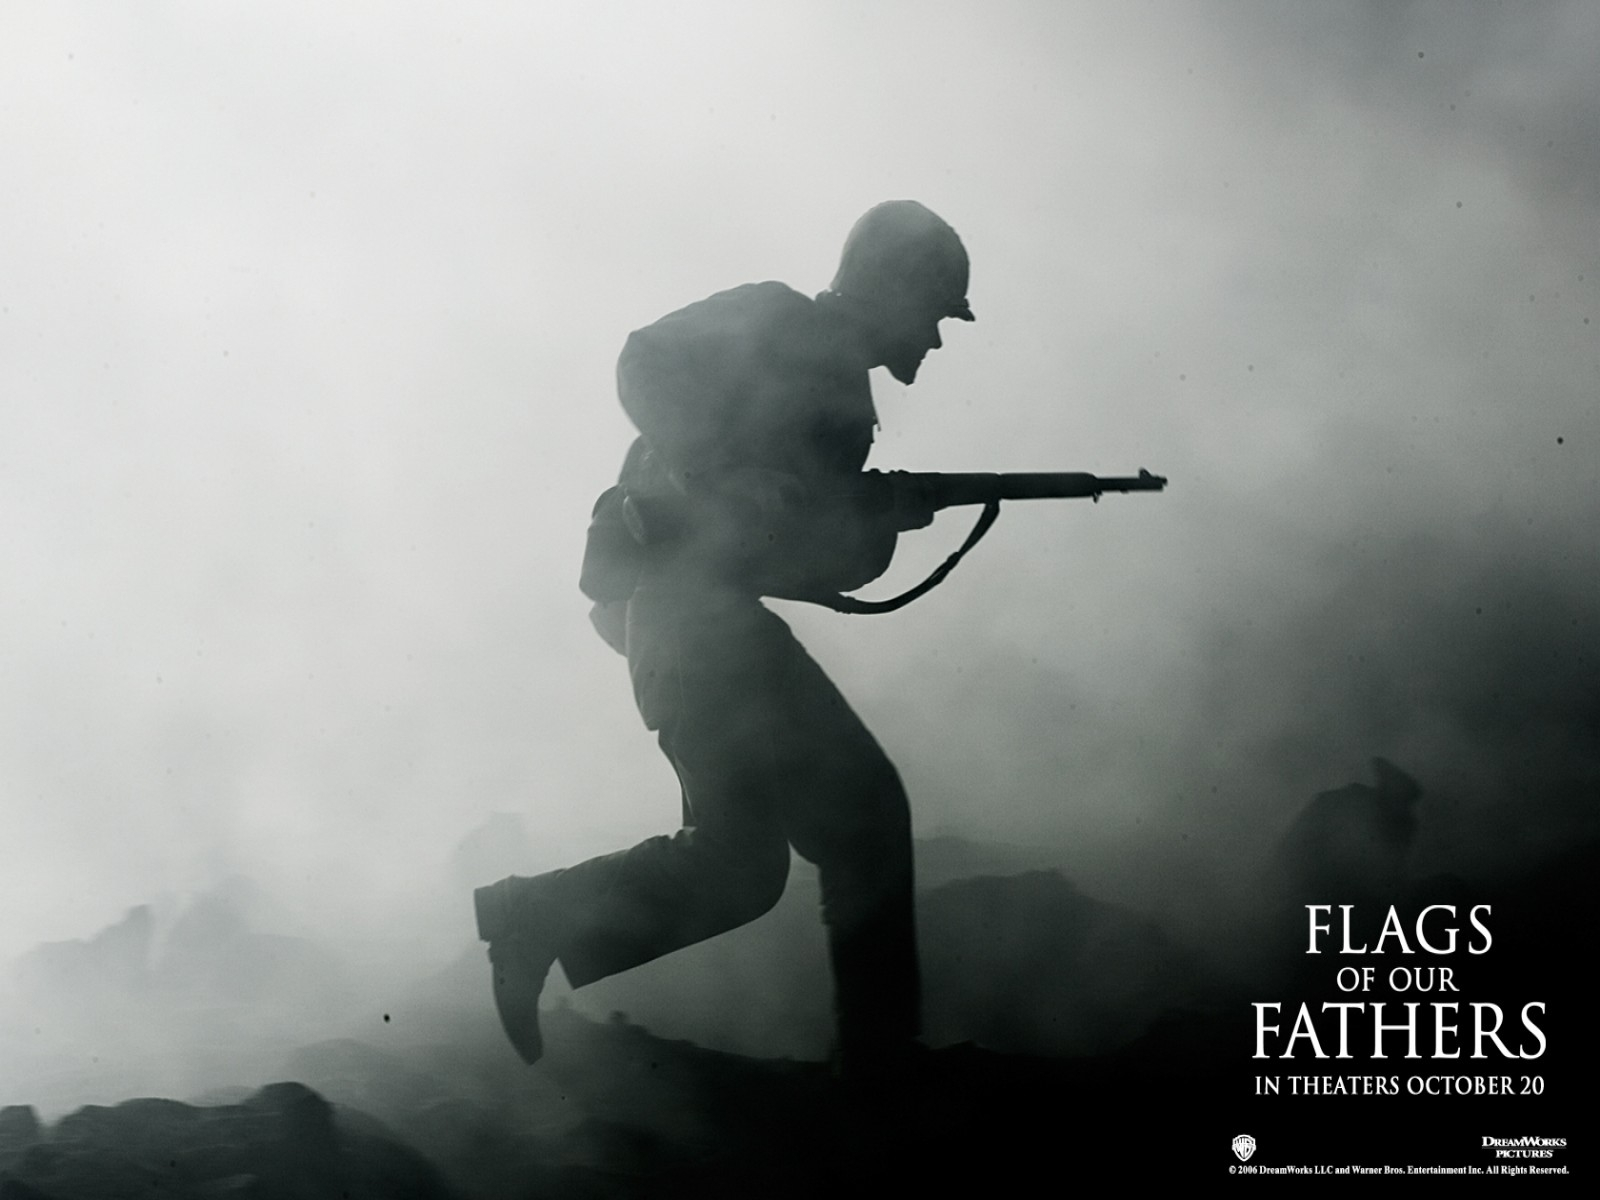 Wallpaper del war drama Flags of Our Fathers